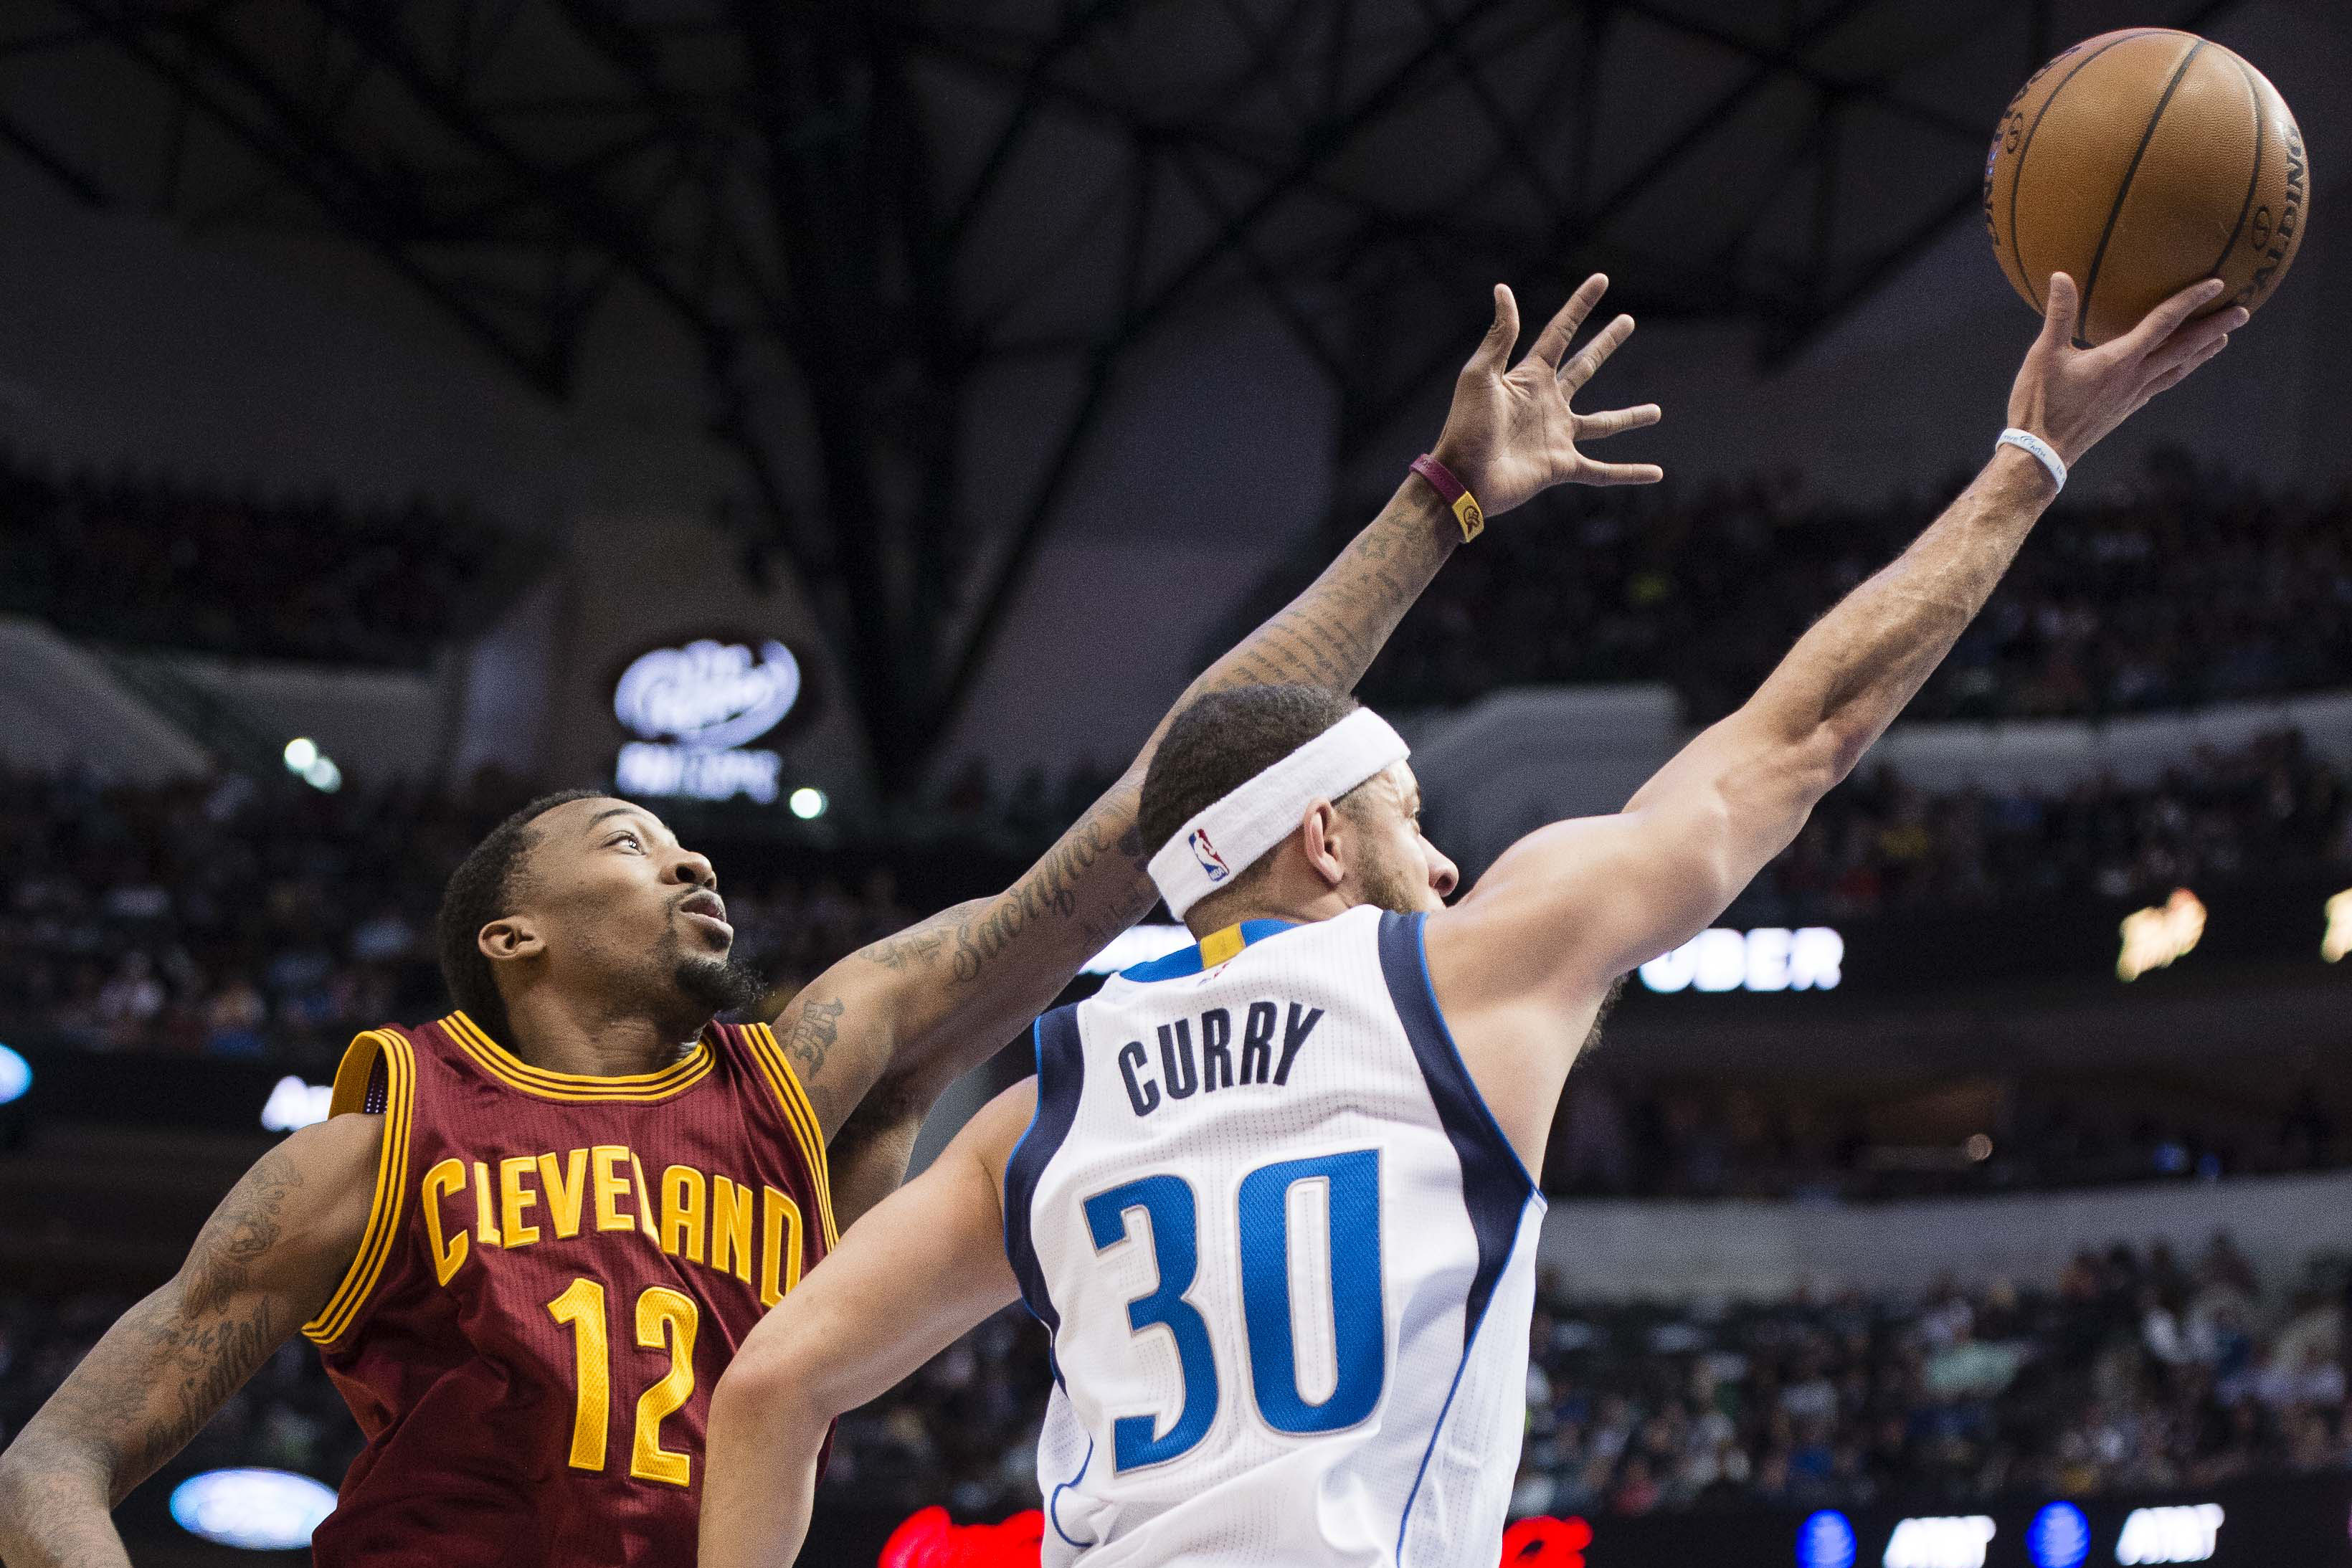 Jan 30, 2017; Dallas, TX, USA; Dallas Mavericks guard Seth Curry (30) drives to the basket past Cleveland Cavaliers guard Jordan McRae (12) during the second quarter at the American Airlines<p>Article source: <a href=